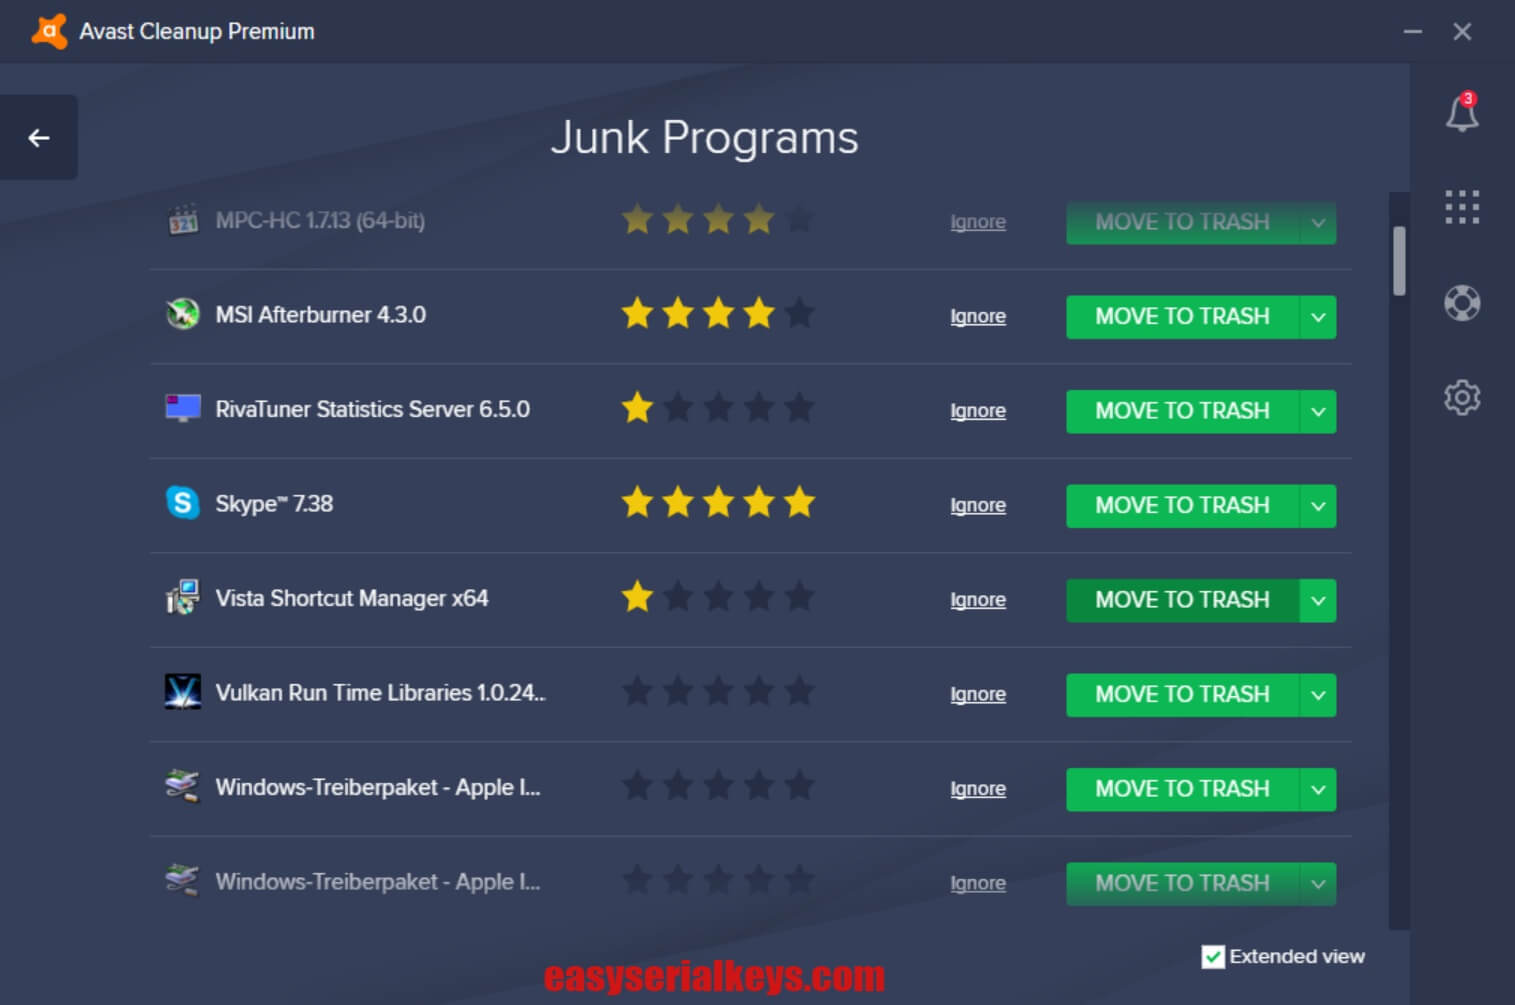 Avast Cleanup Premium Browser Cleanup